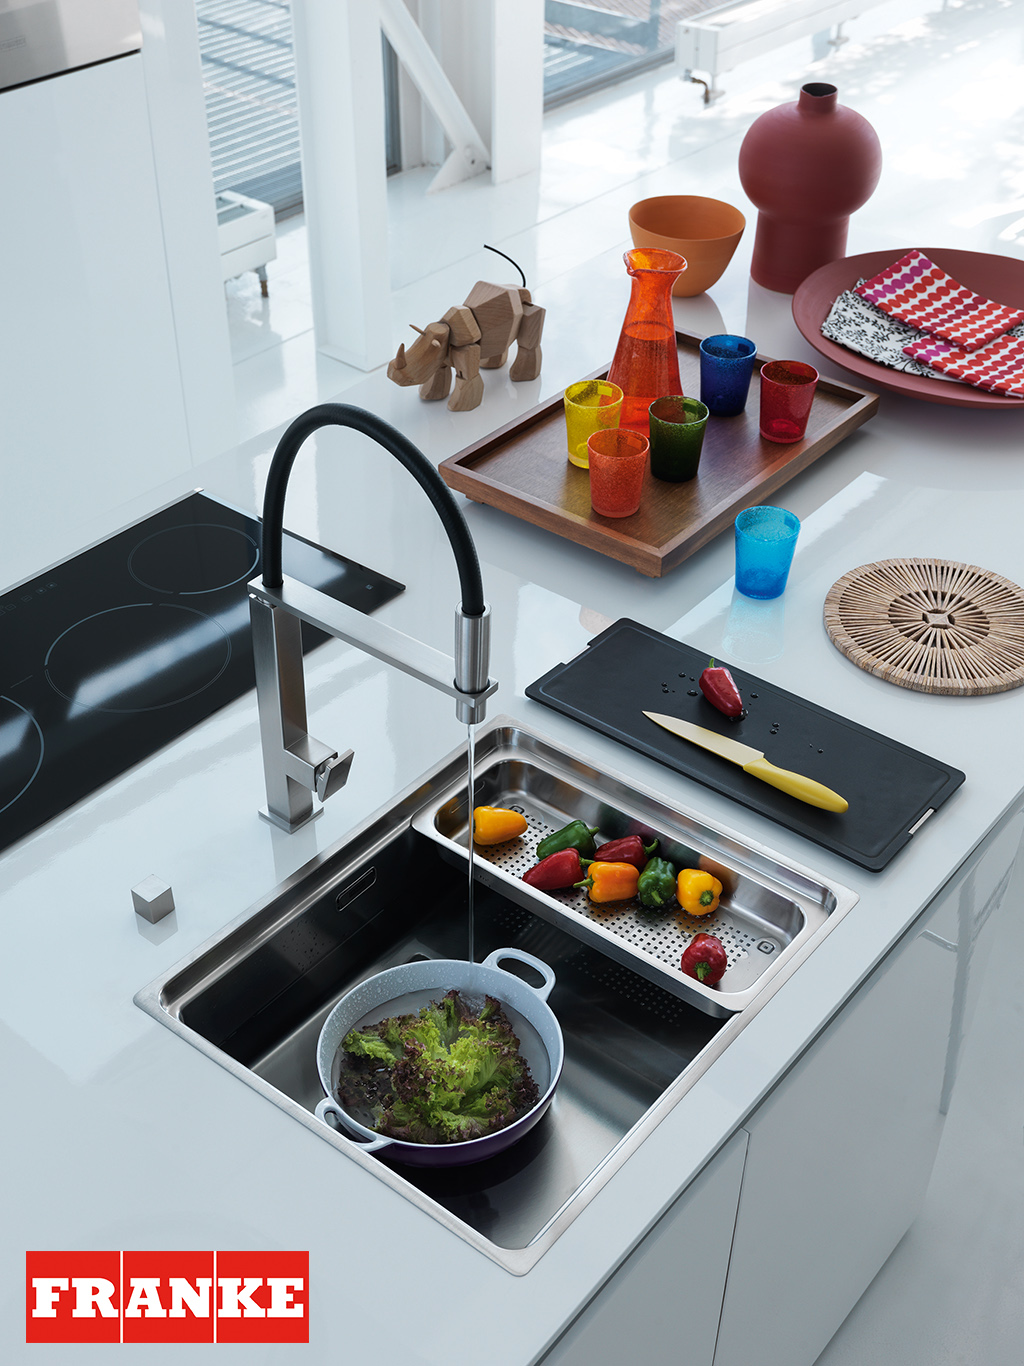 Cleaning Franke Sinks : Franke Sinks and Taps